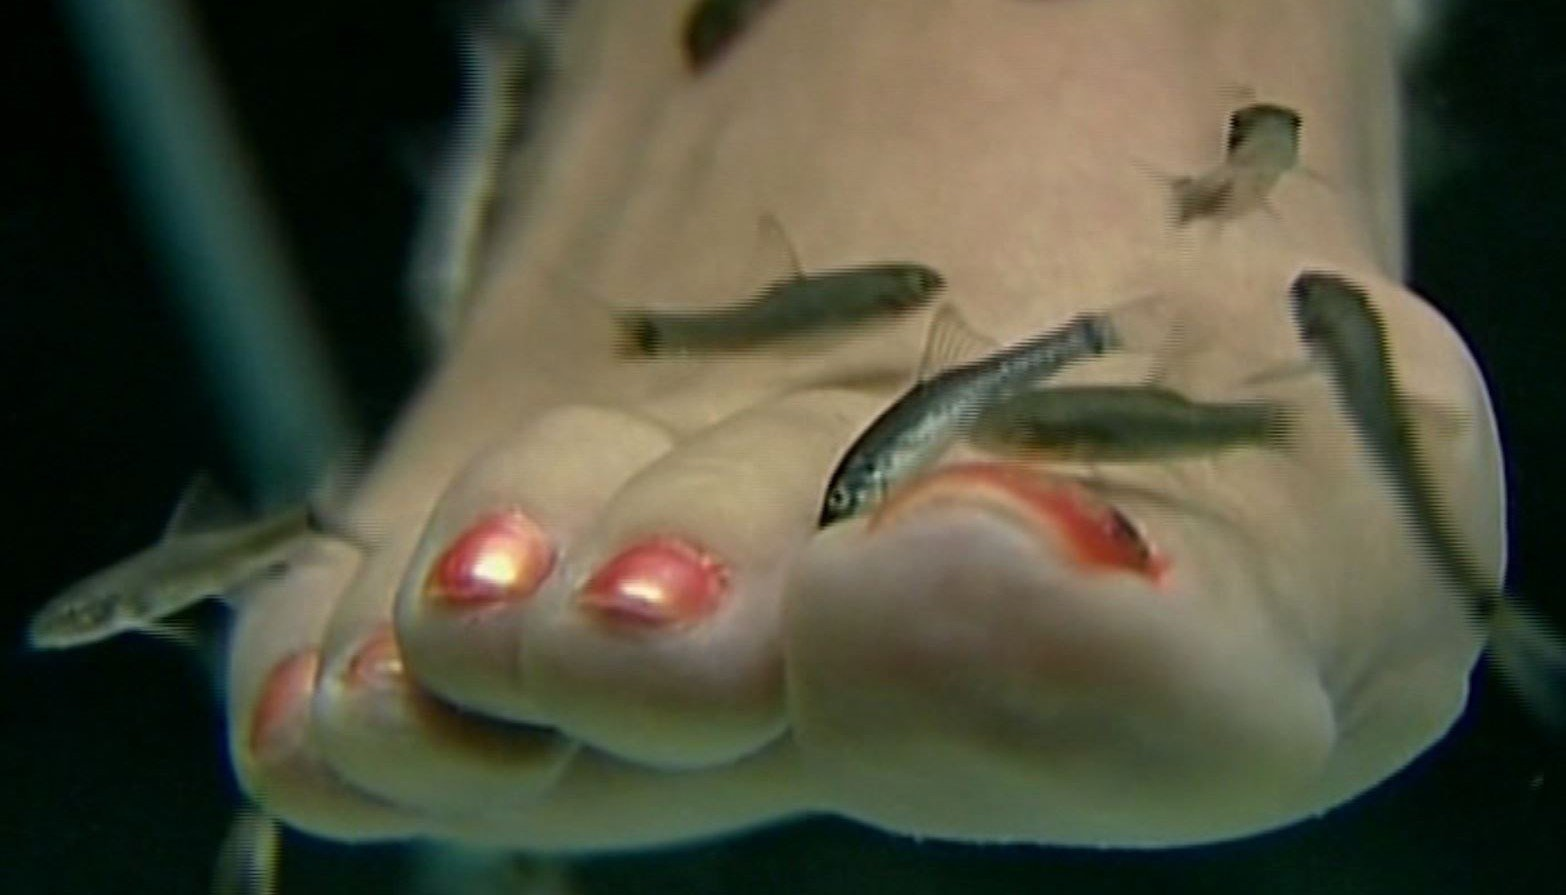 A Fish Pedicure May Have Made This Woman's Toenails Fall Off